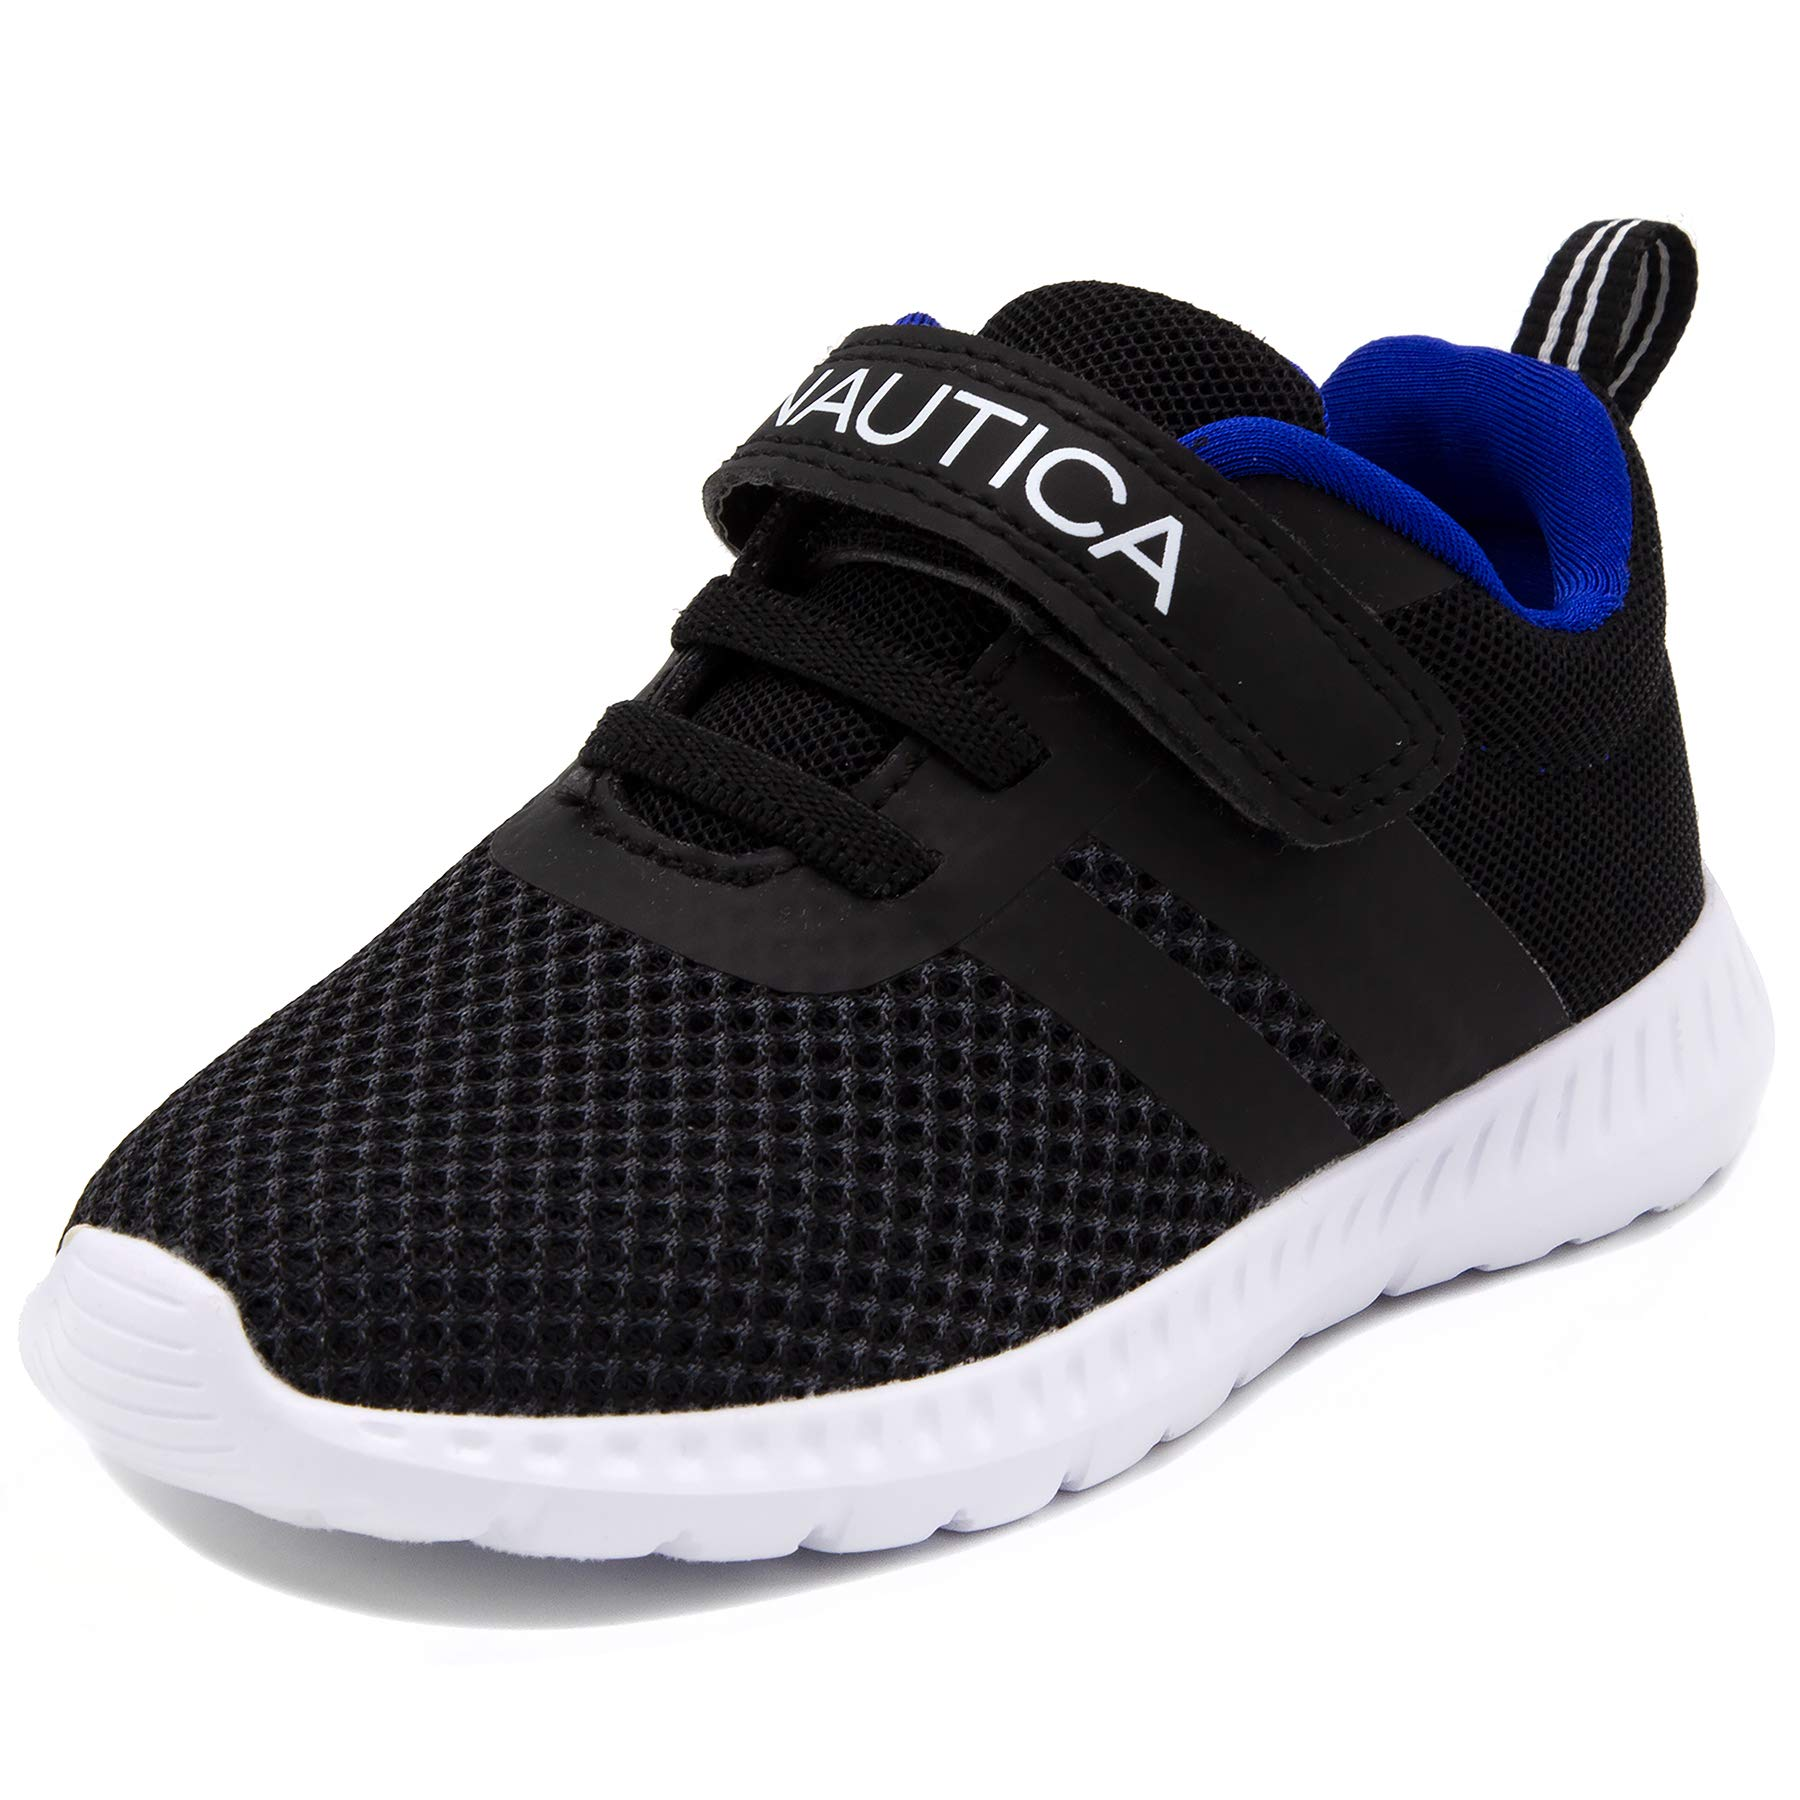 Toddler//Little Kid Nautica Kids Fashion Sneaker Athletic Running Shoe with One Strap Boys-Girls 